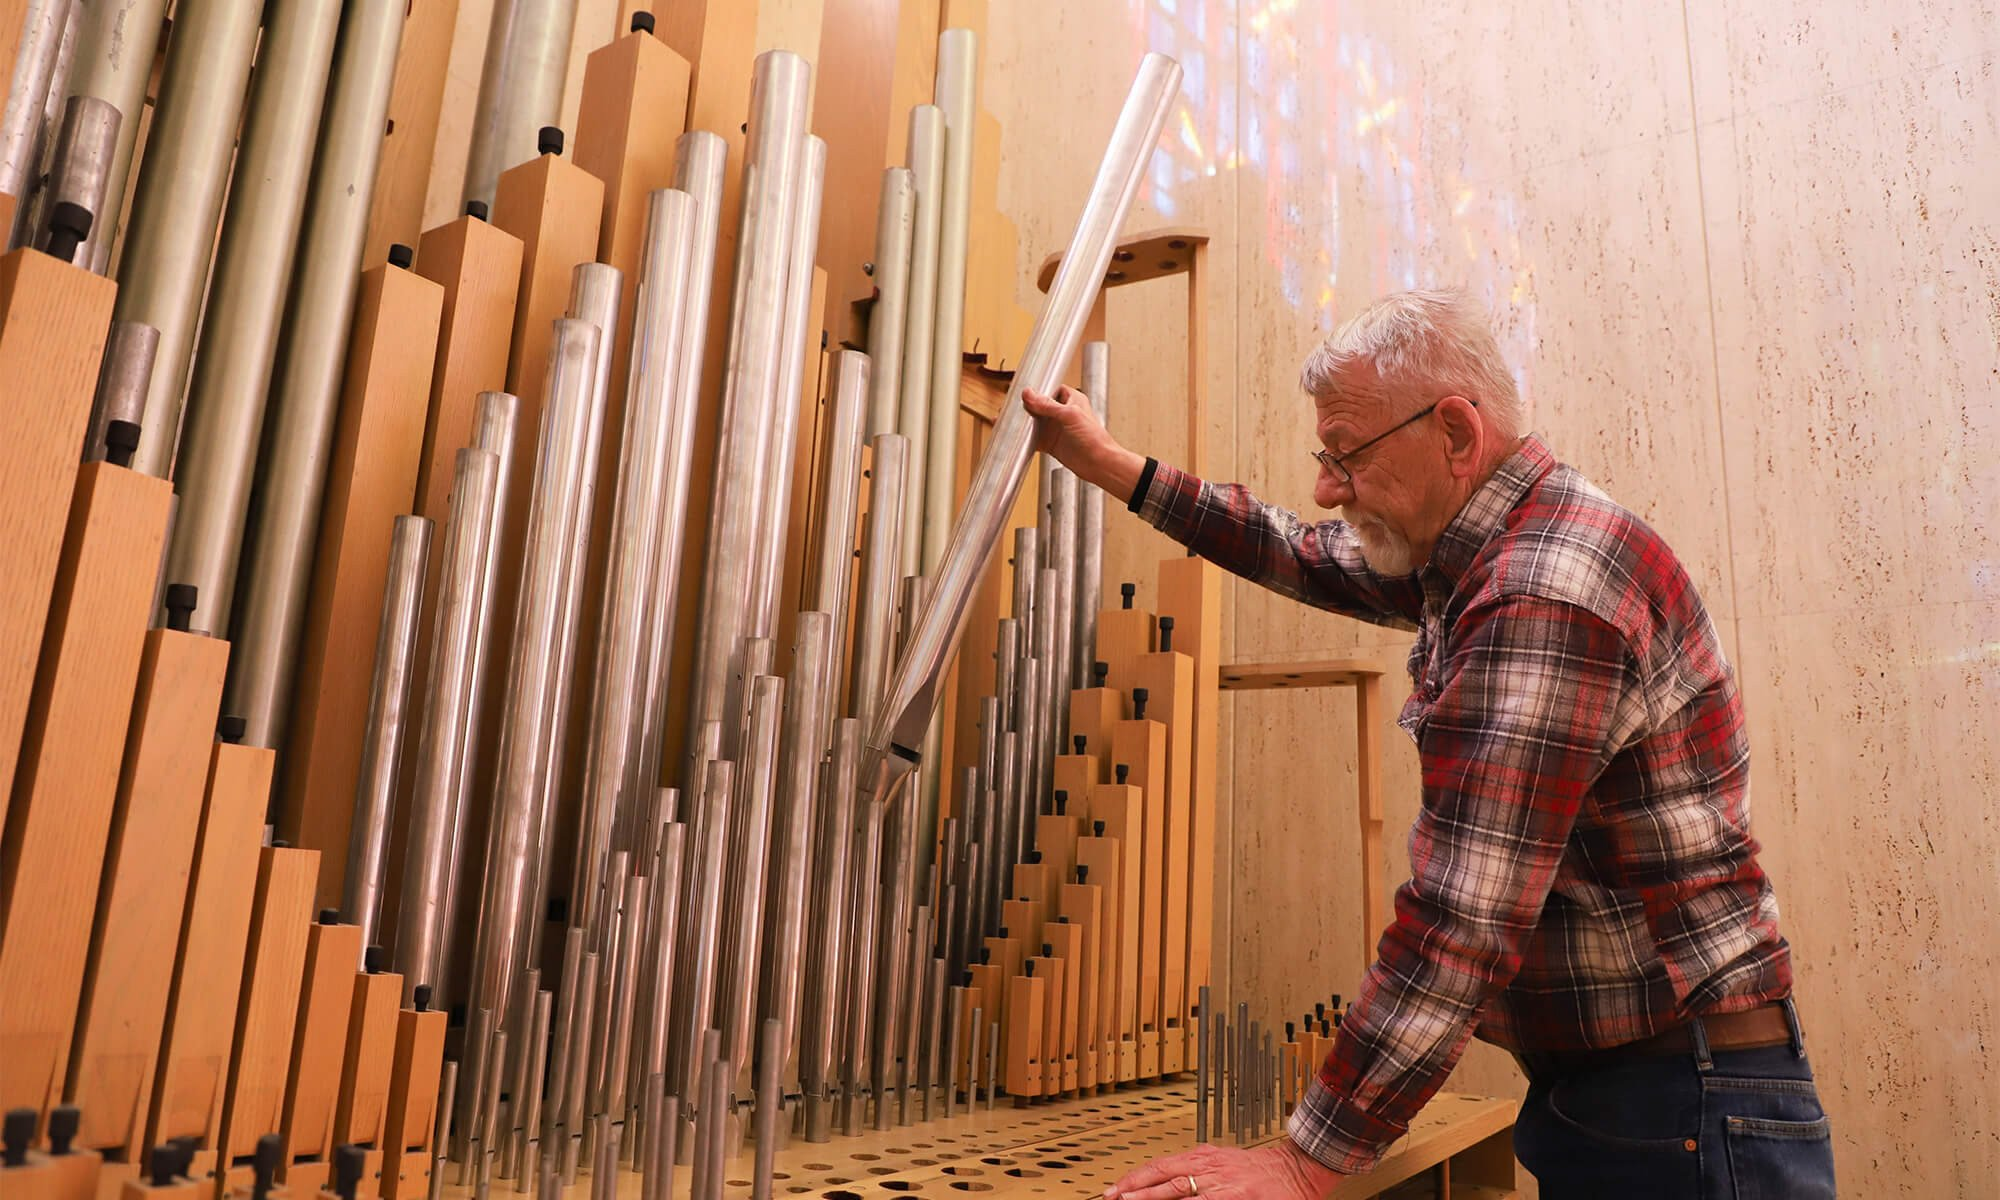 Stanton Peters assembles the new pipe organ in Concordia's Rogate Chapel.